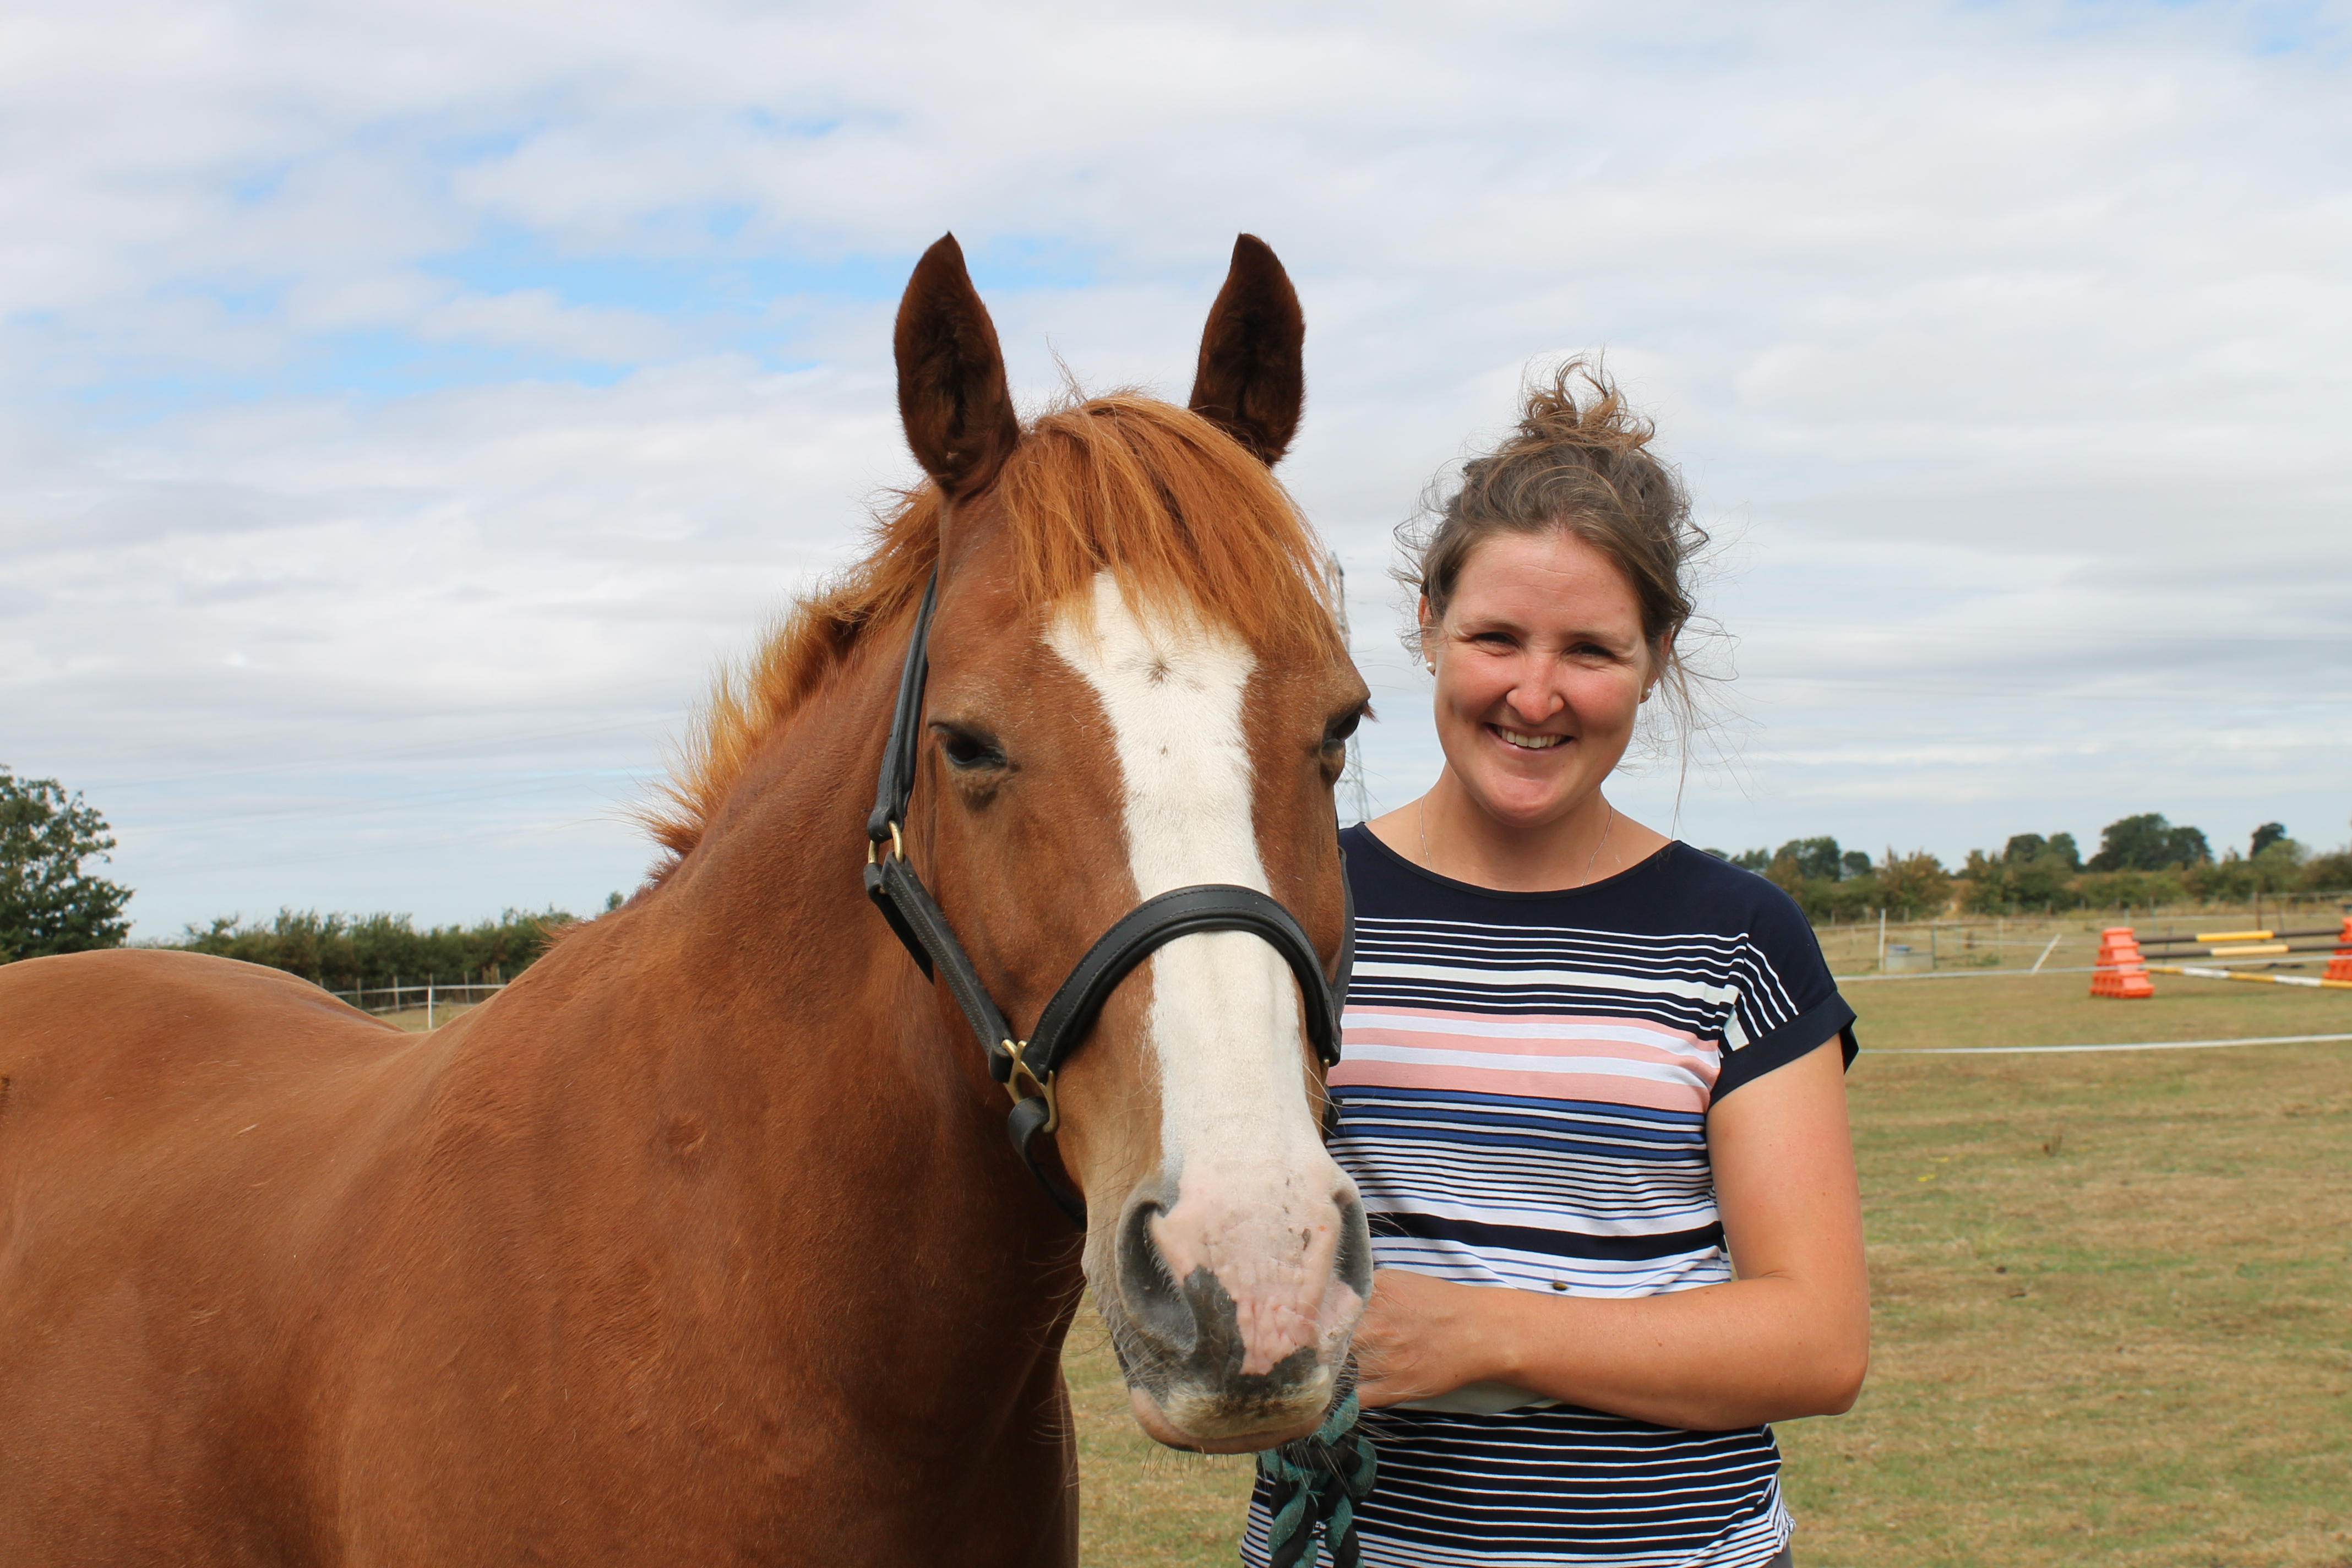 £85,000 Boost for Thorney Riding School and Rutland Farm